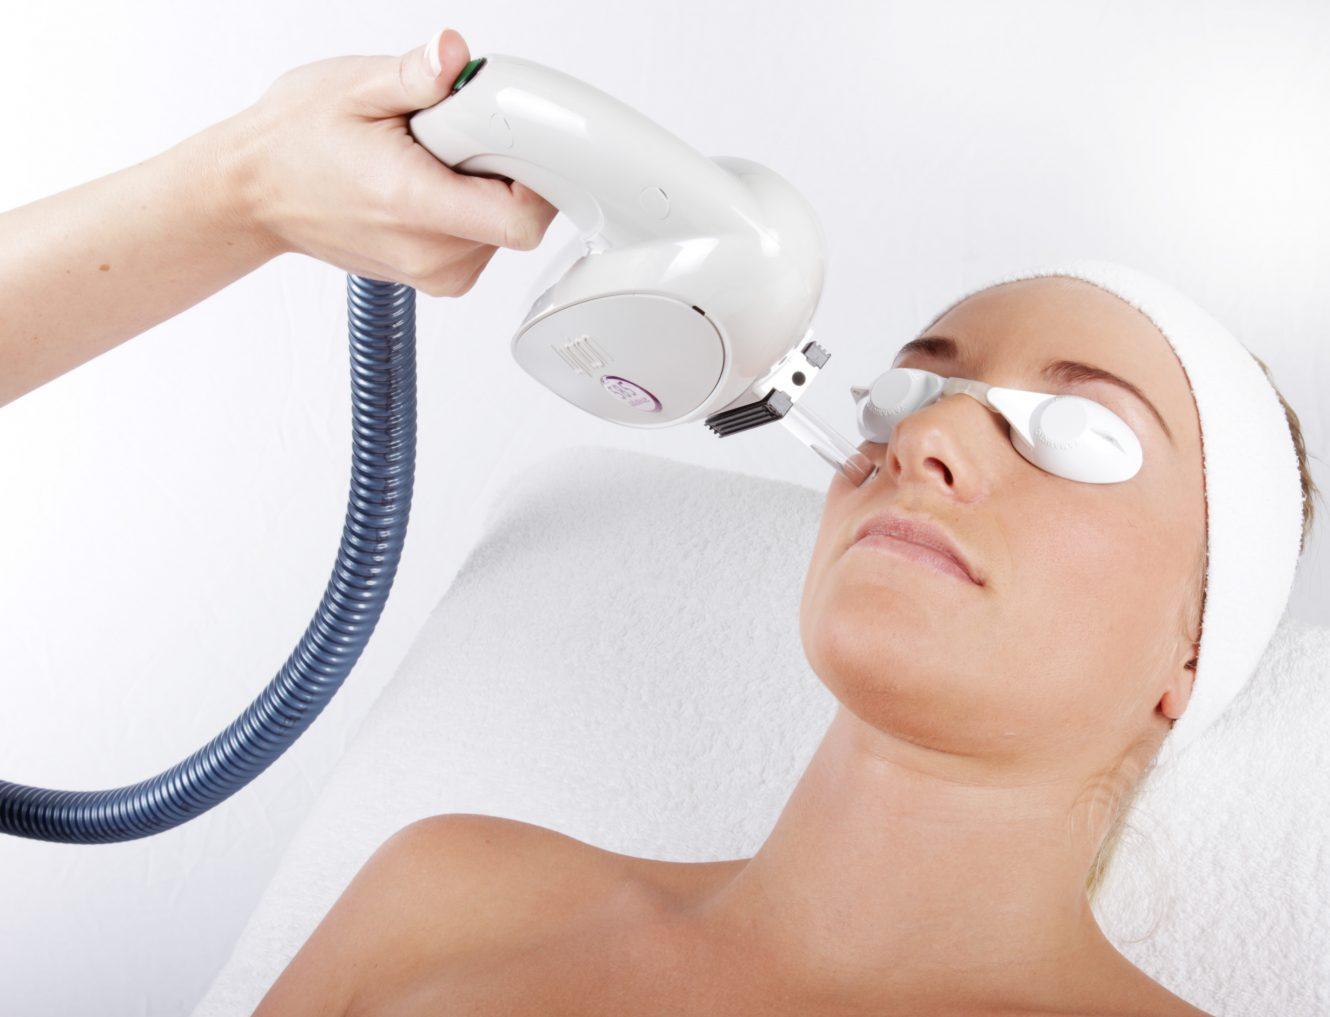 585 IPL Handpiece Treating Womans Face